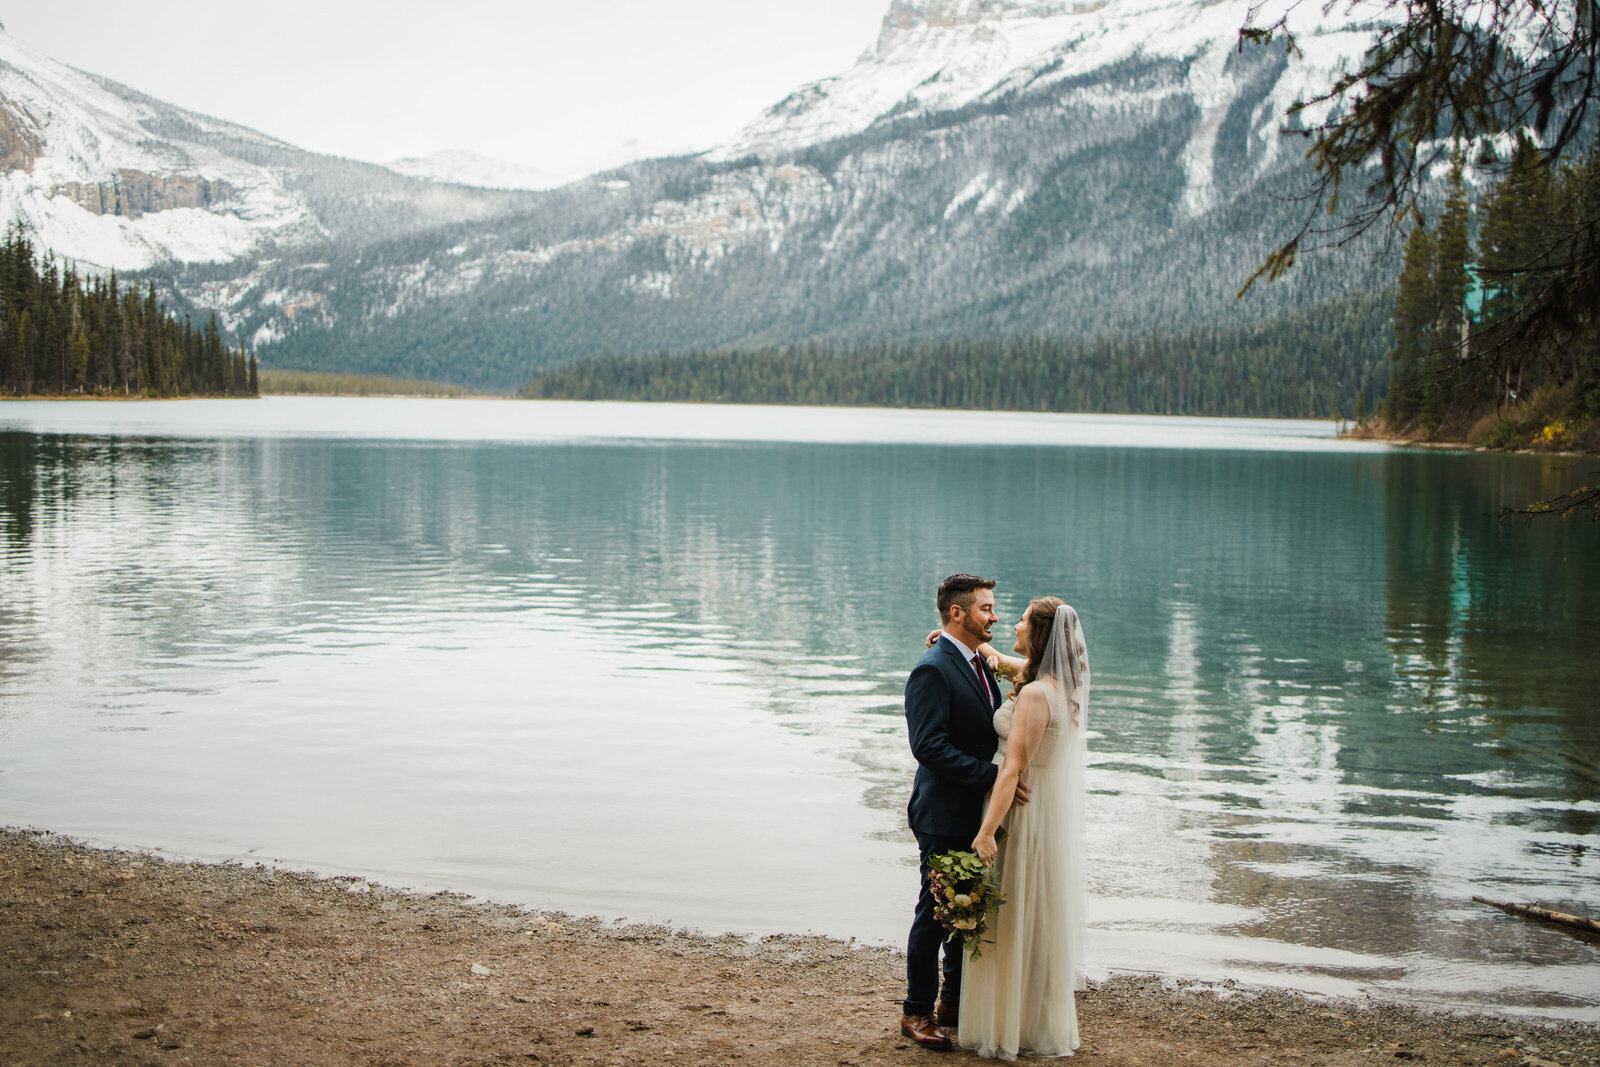 banff.wedding.photographer--19-1